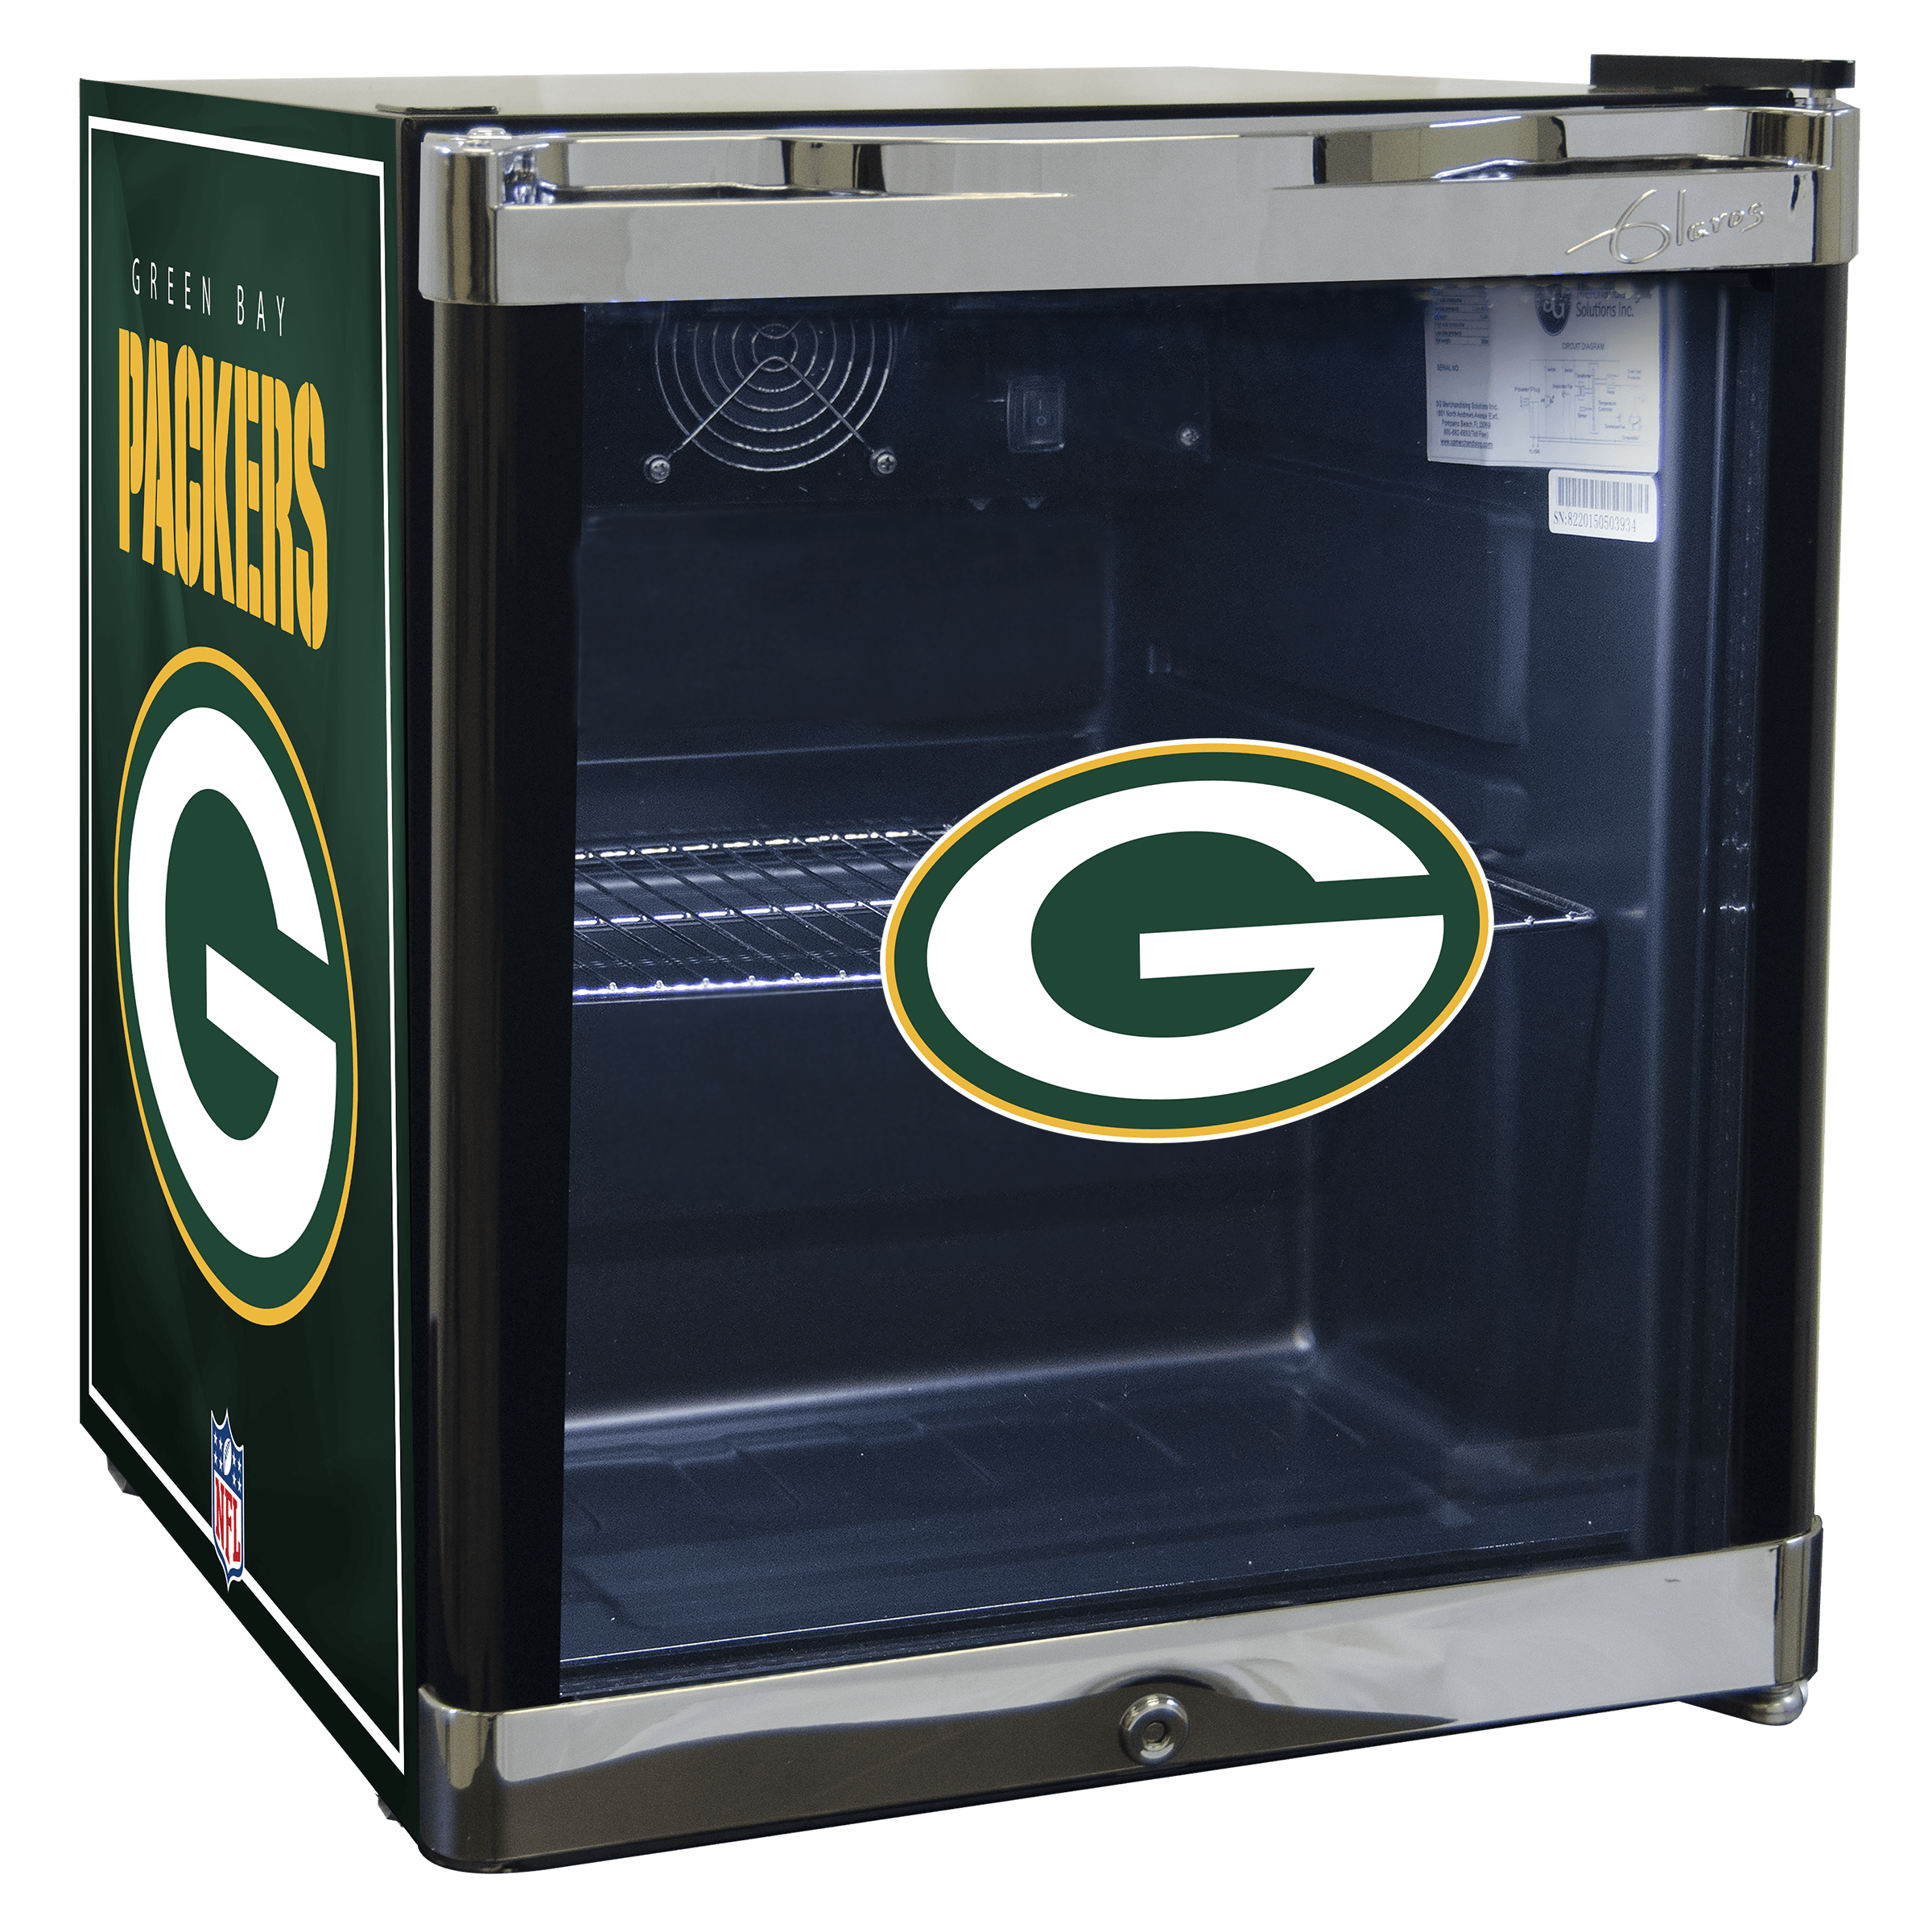 NFL Refrigerated Beverage Center 1.8 cu ft- Green Bay Packers